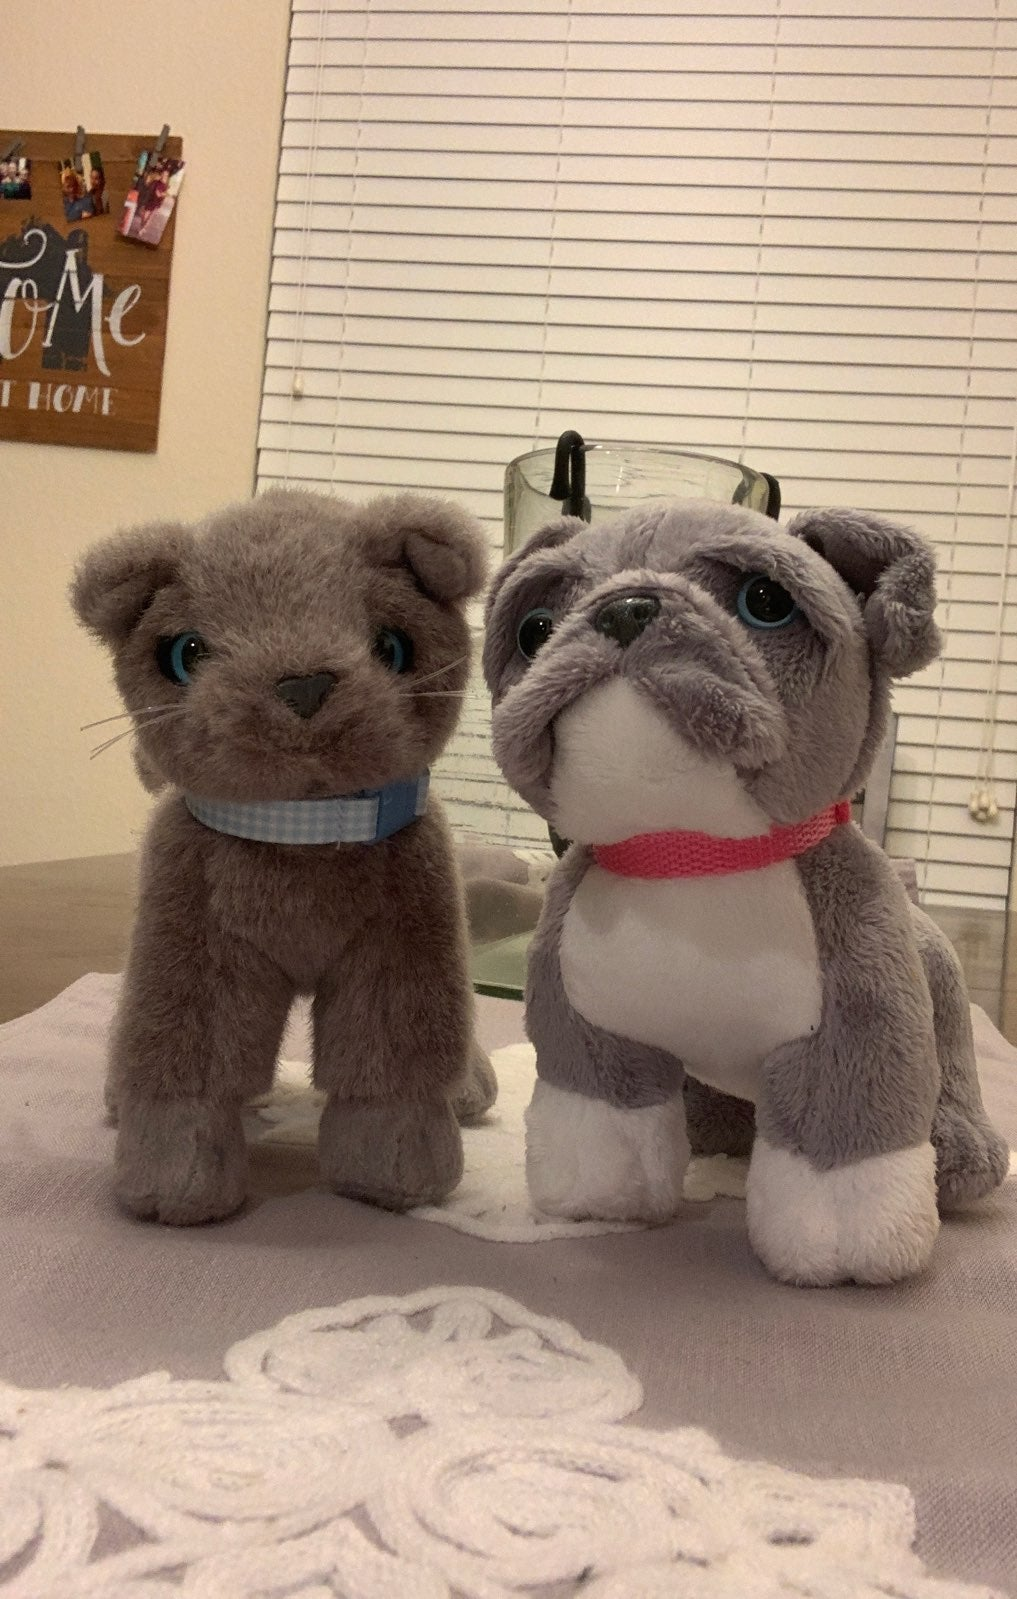 our generation cat and dog plush